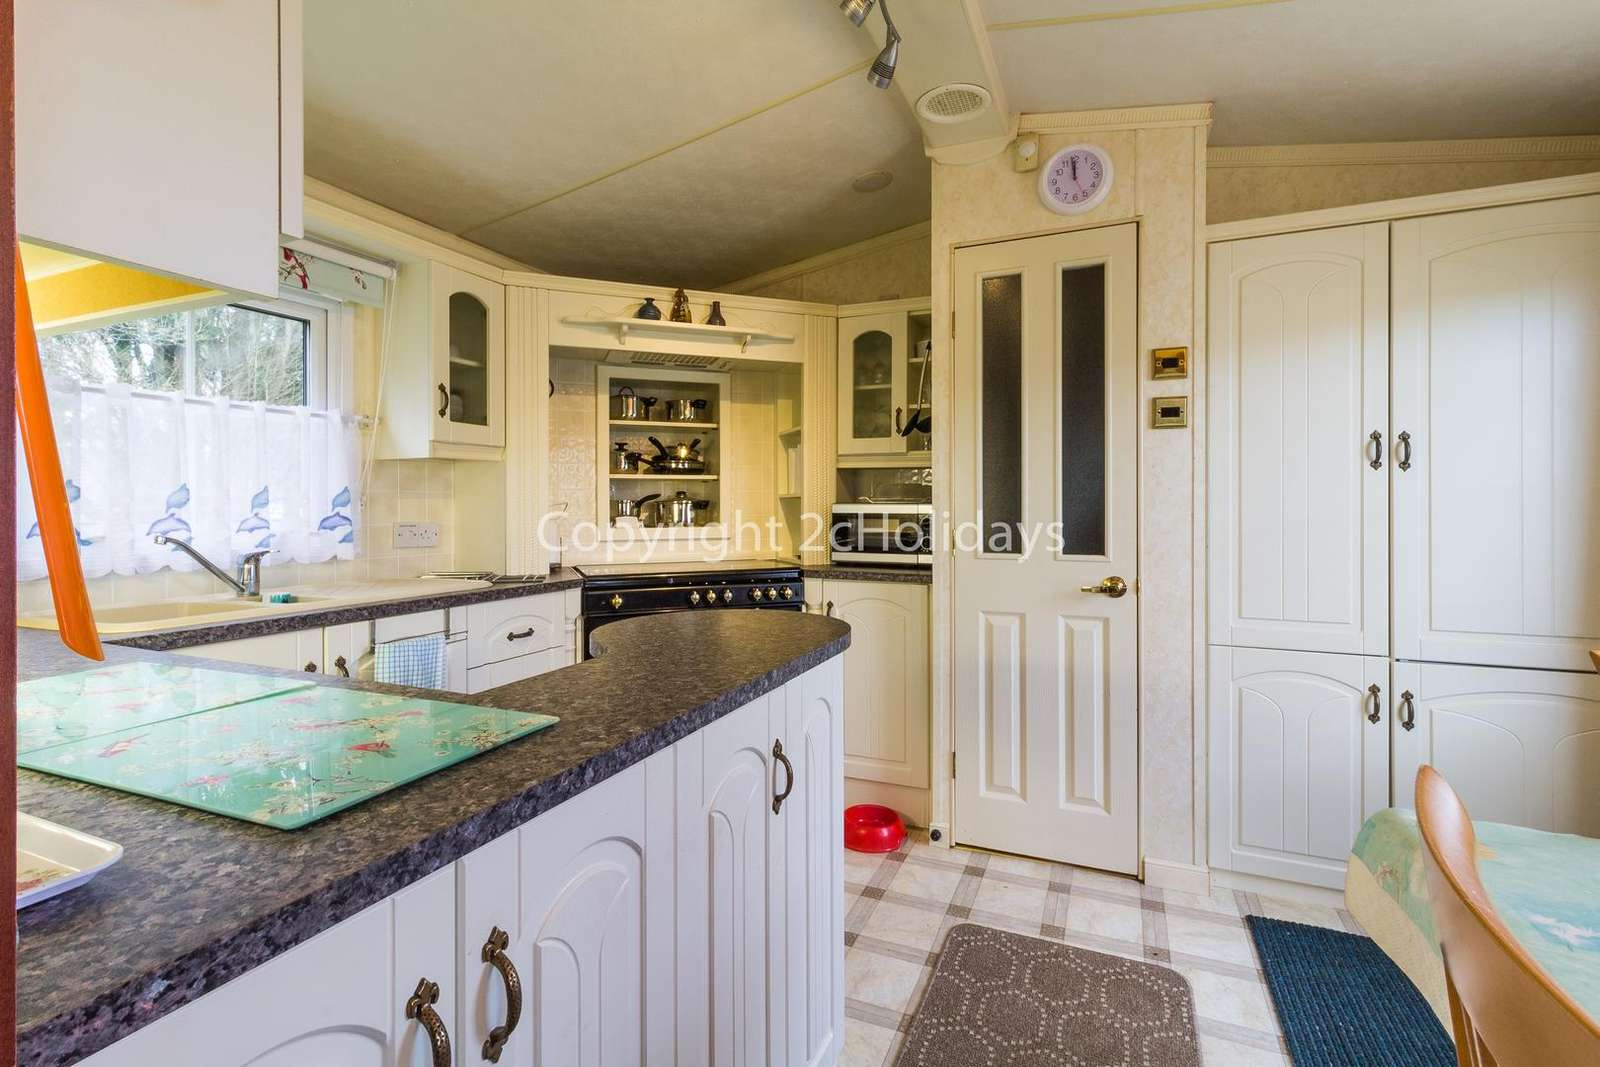 Theres plenty of storage in this kitchen as well as a dish washer!